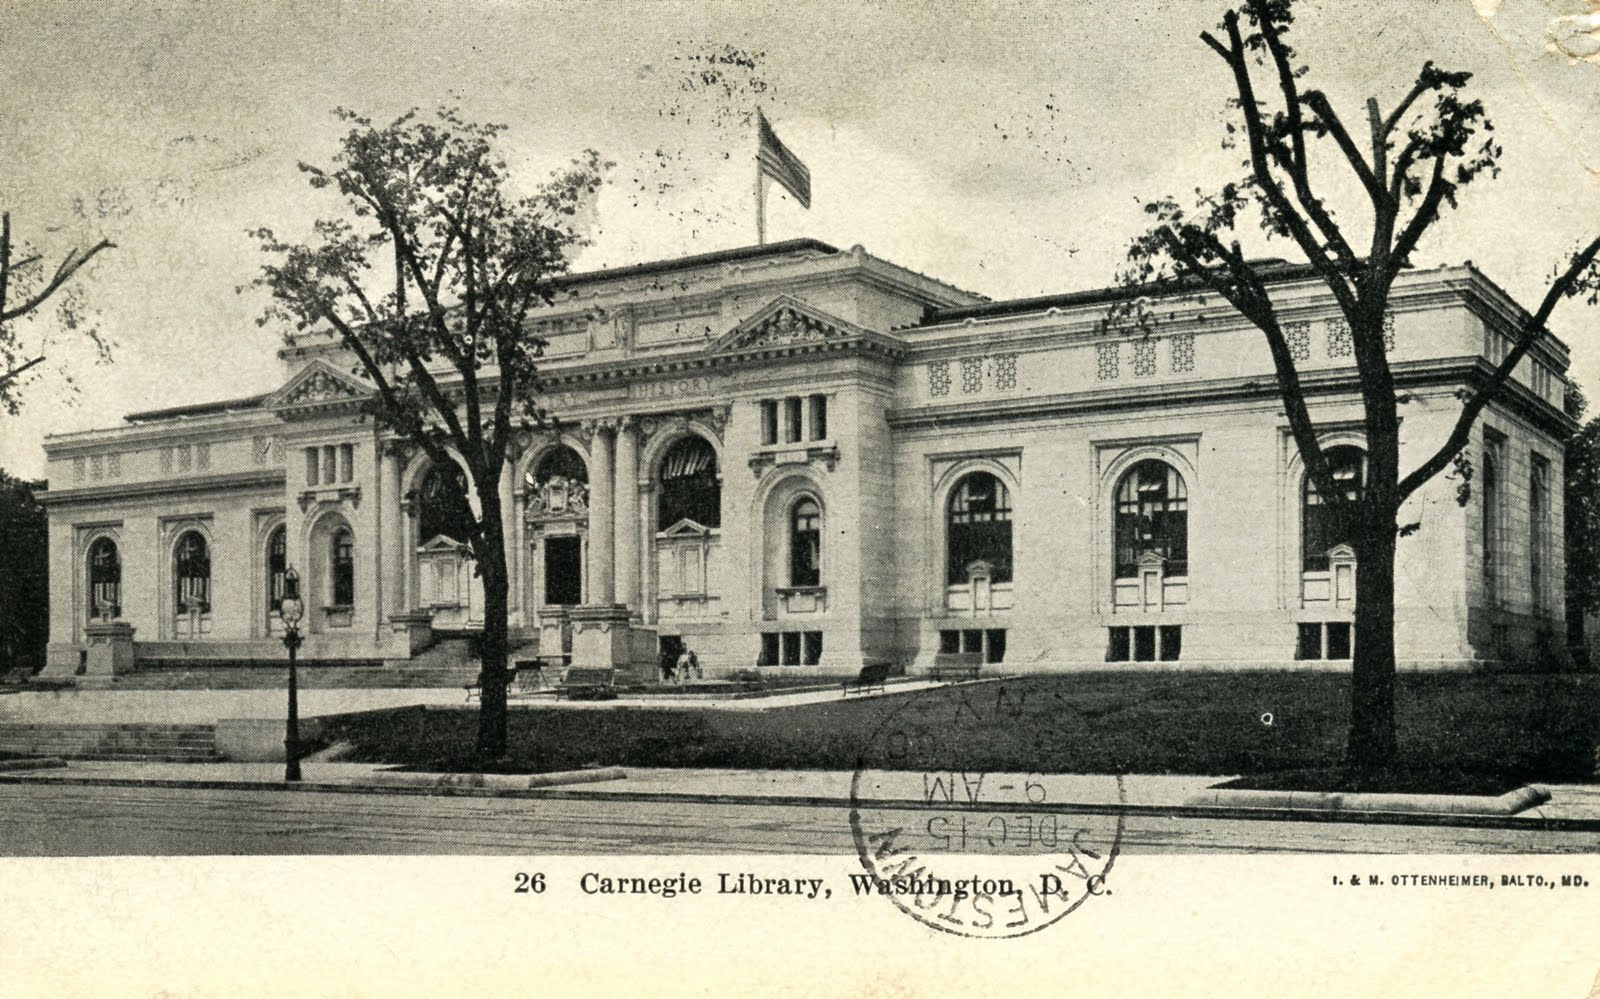 In 1899, philanthropist and library enthusiast Andrew Carnegie donated funds to build the Central Library at Mount Vernon Square.